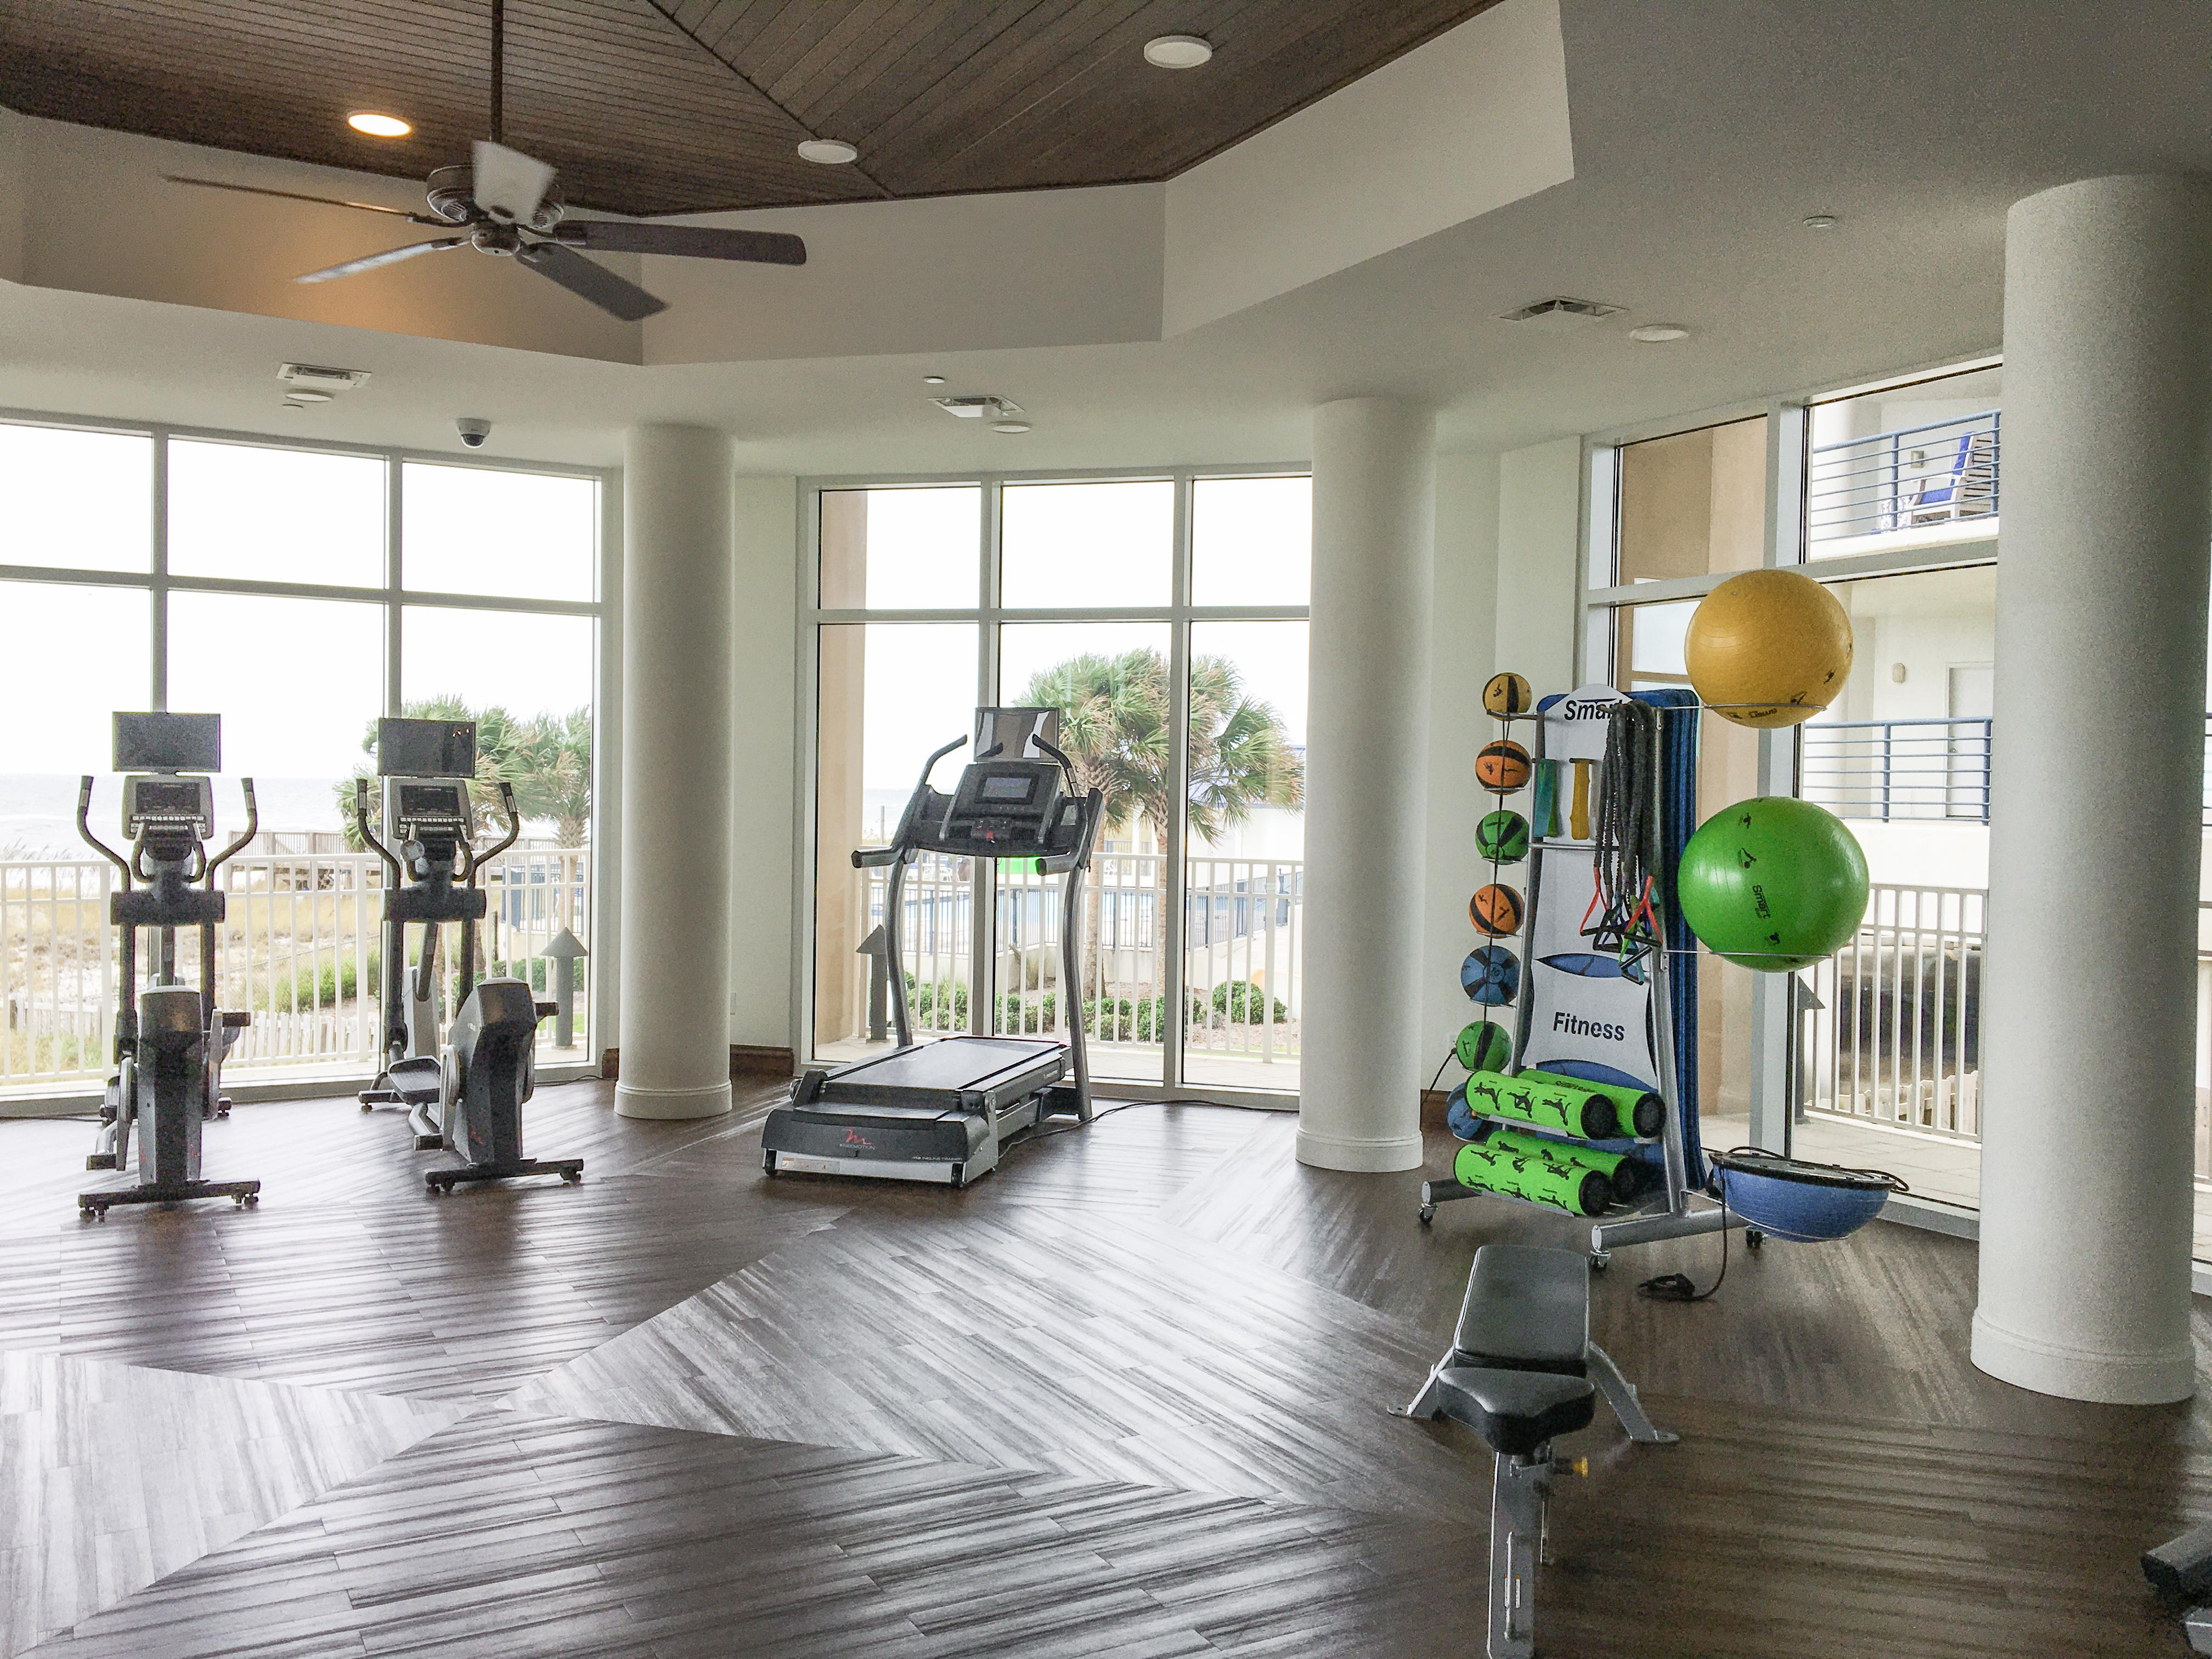 It's easy to stick to your fitness routine at the well-equipped gym.